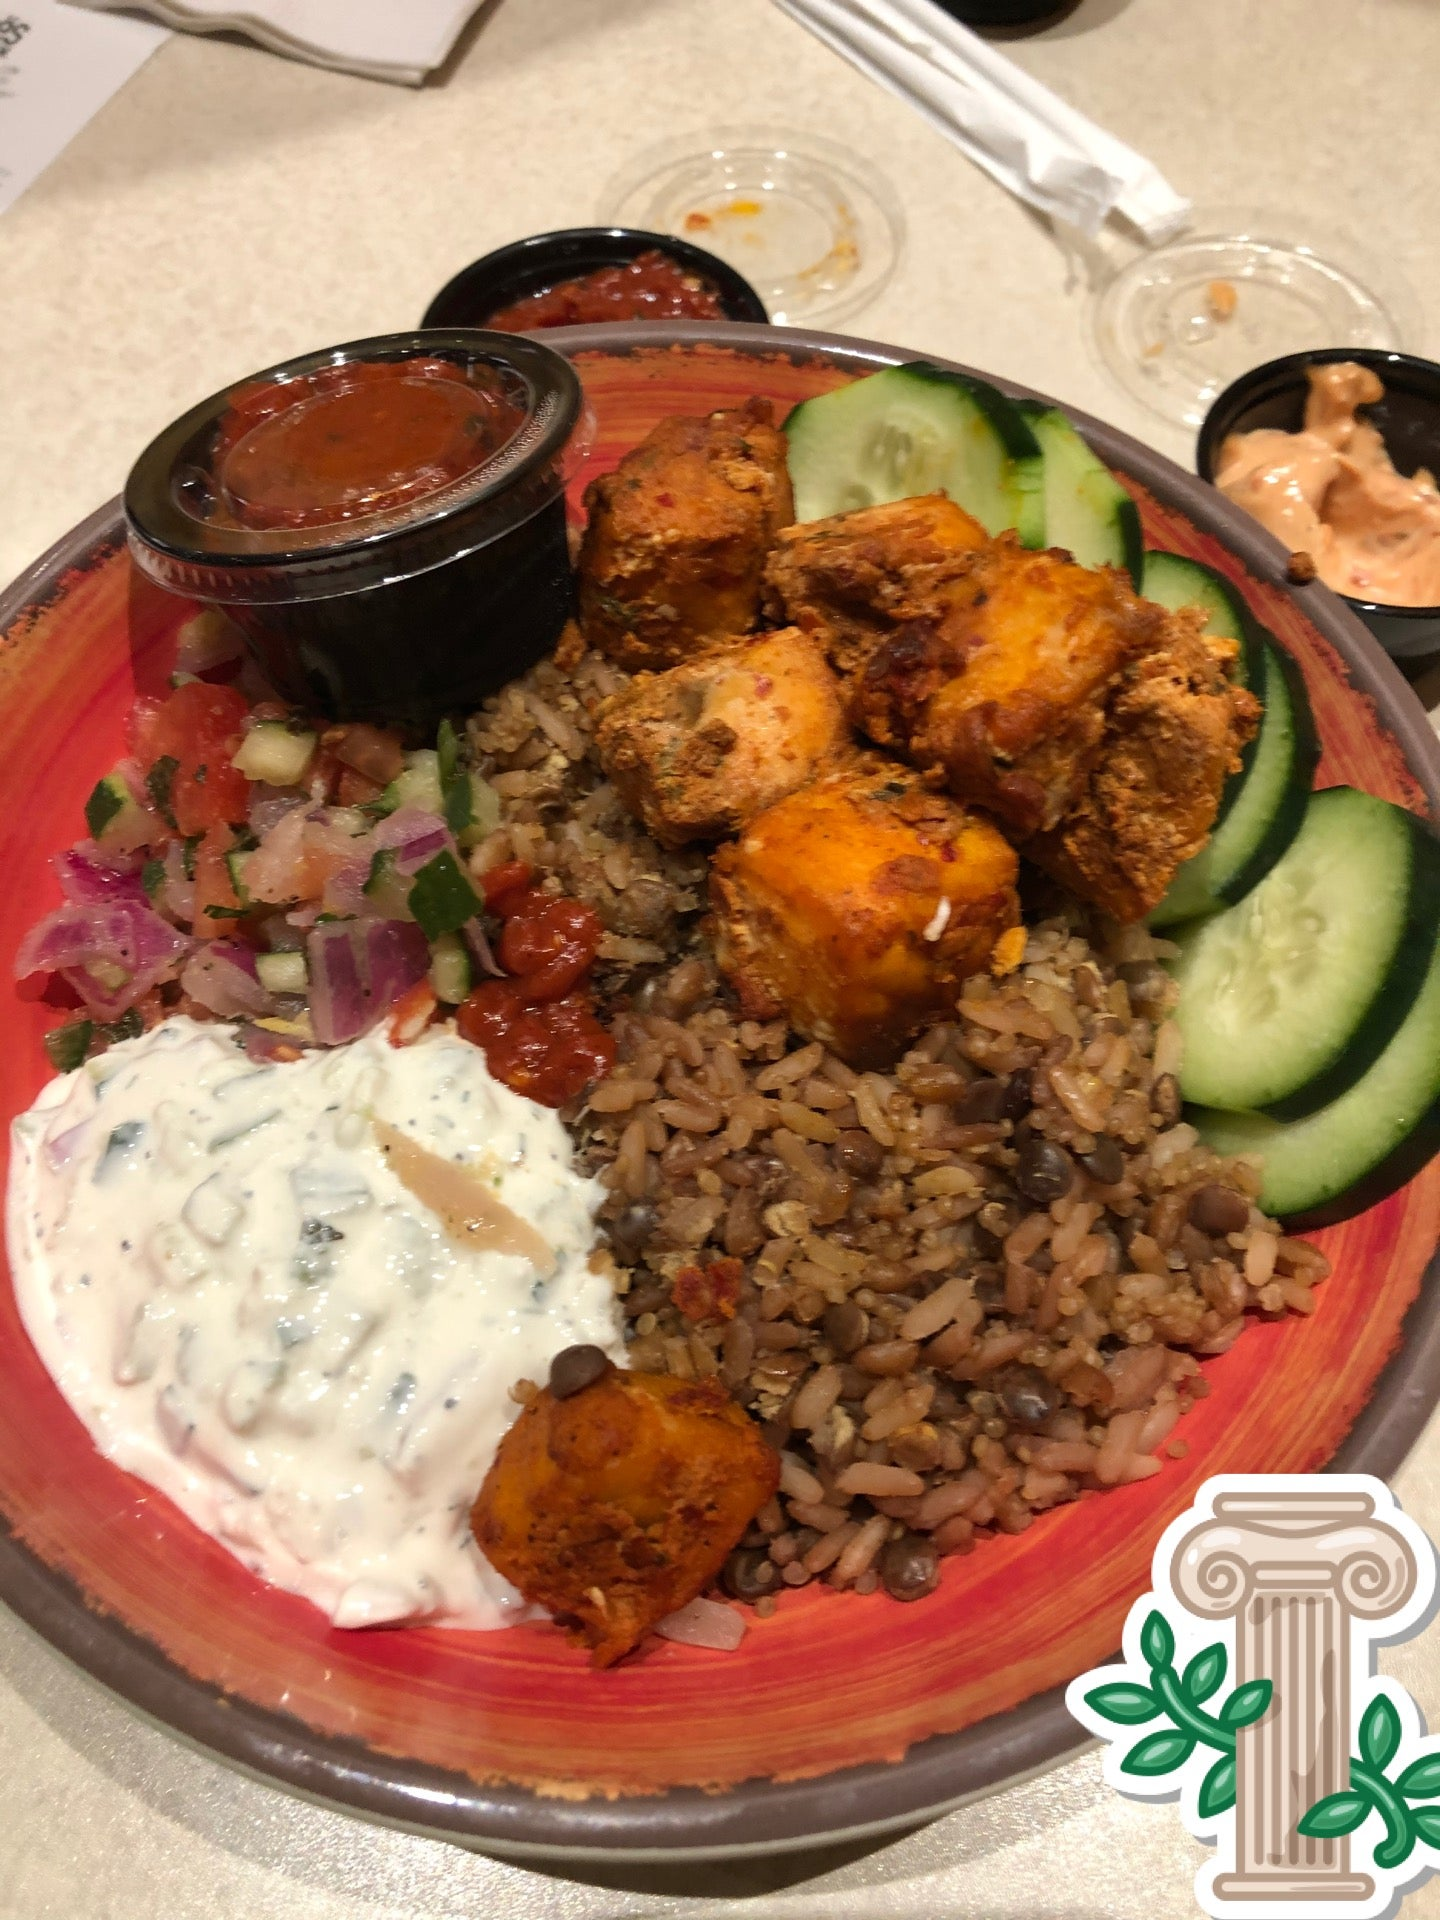 Phillysdon04 On Twitter Salmon Power Grain Bowl With Harissa Zoes Kitchen In Newtown Pa Https T Co Hbiusbkxcs Https T Co Ayhf4mncmb Twitter